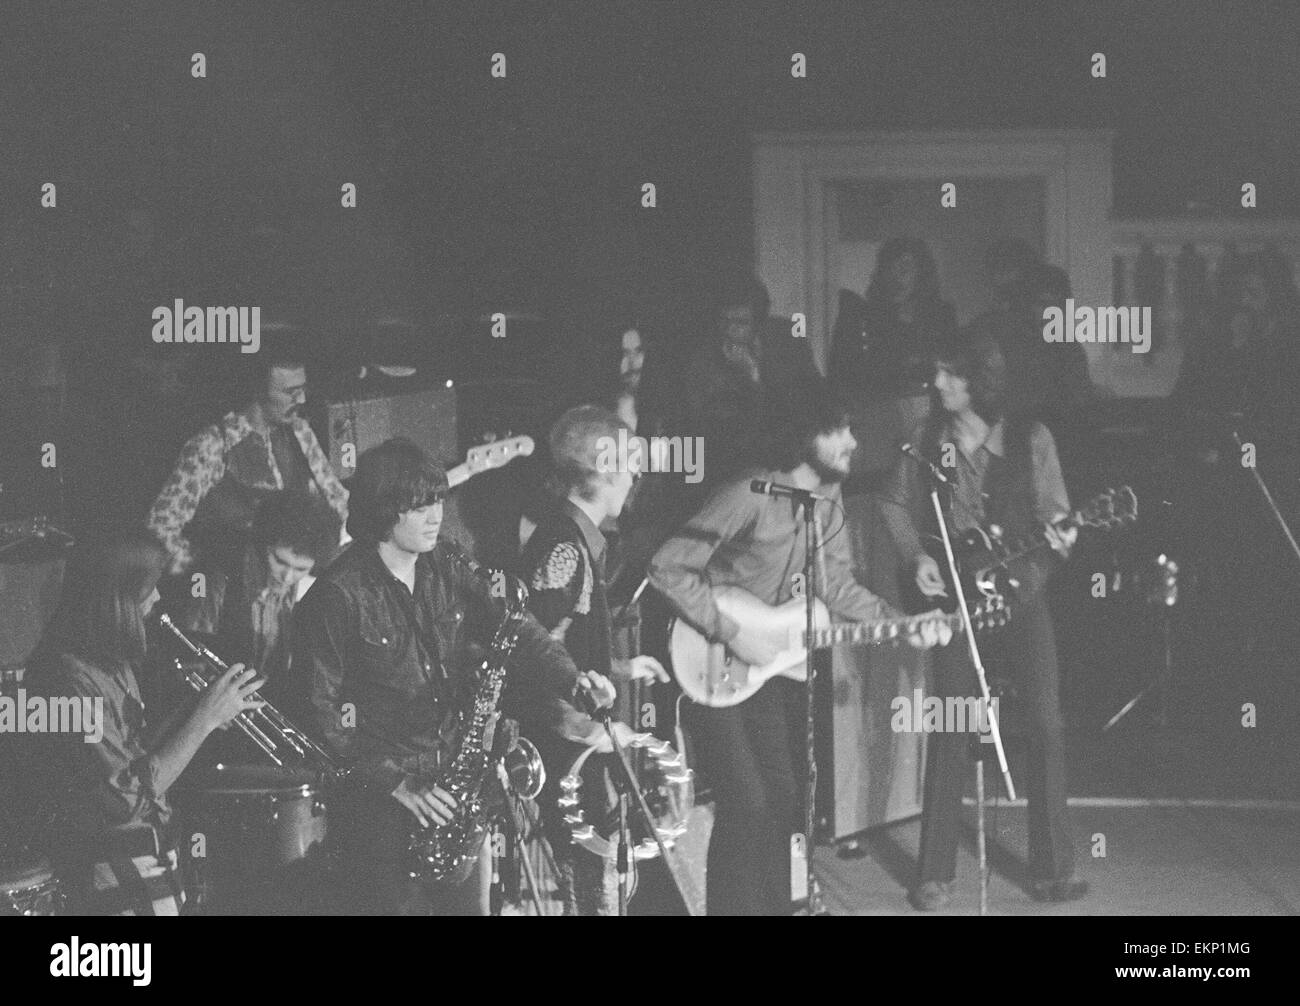 Delaney & Bonnie & Friends music concert at Birmingham Town Hall 4th December 1969. Jim Price with trumpet, - Stock Image